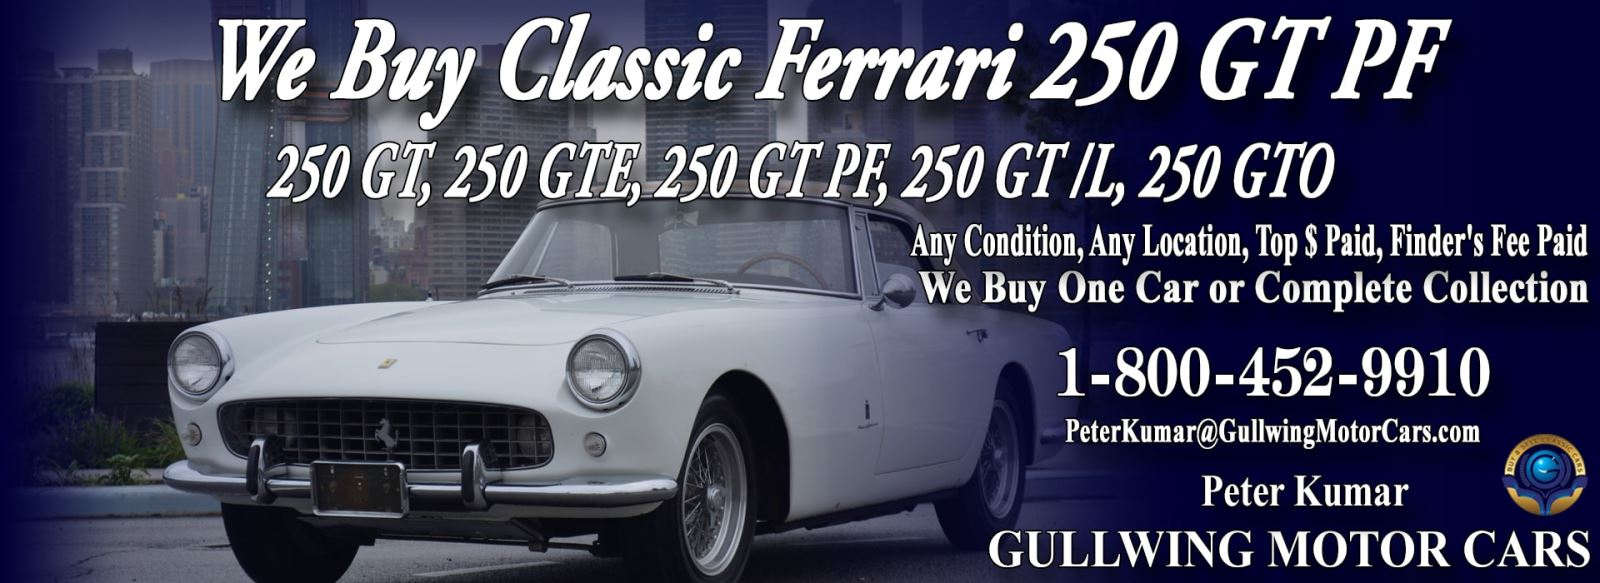 Classic Ferrari 250 GT PF for sale, we buy vintage Ferrari 250GT PF. Call Peter Kumar. Gullwing Motor